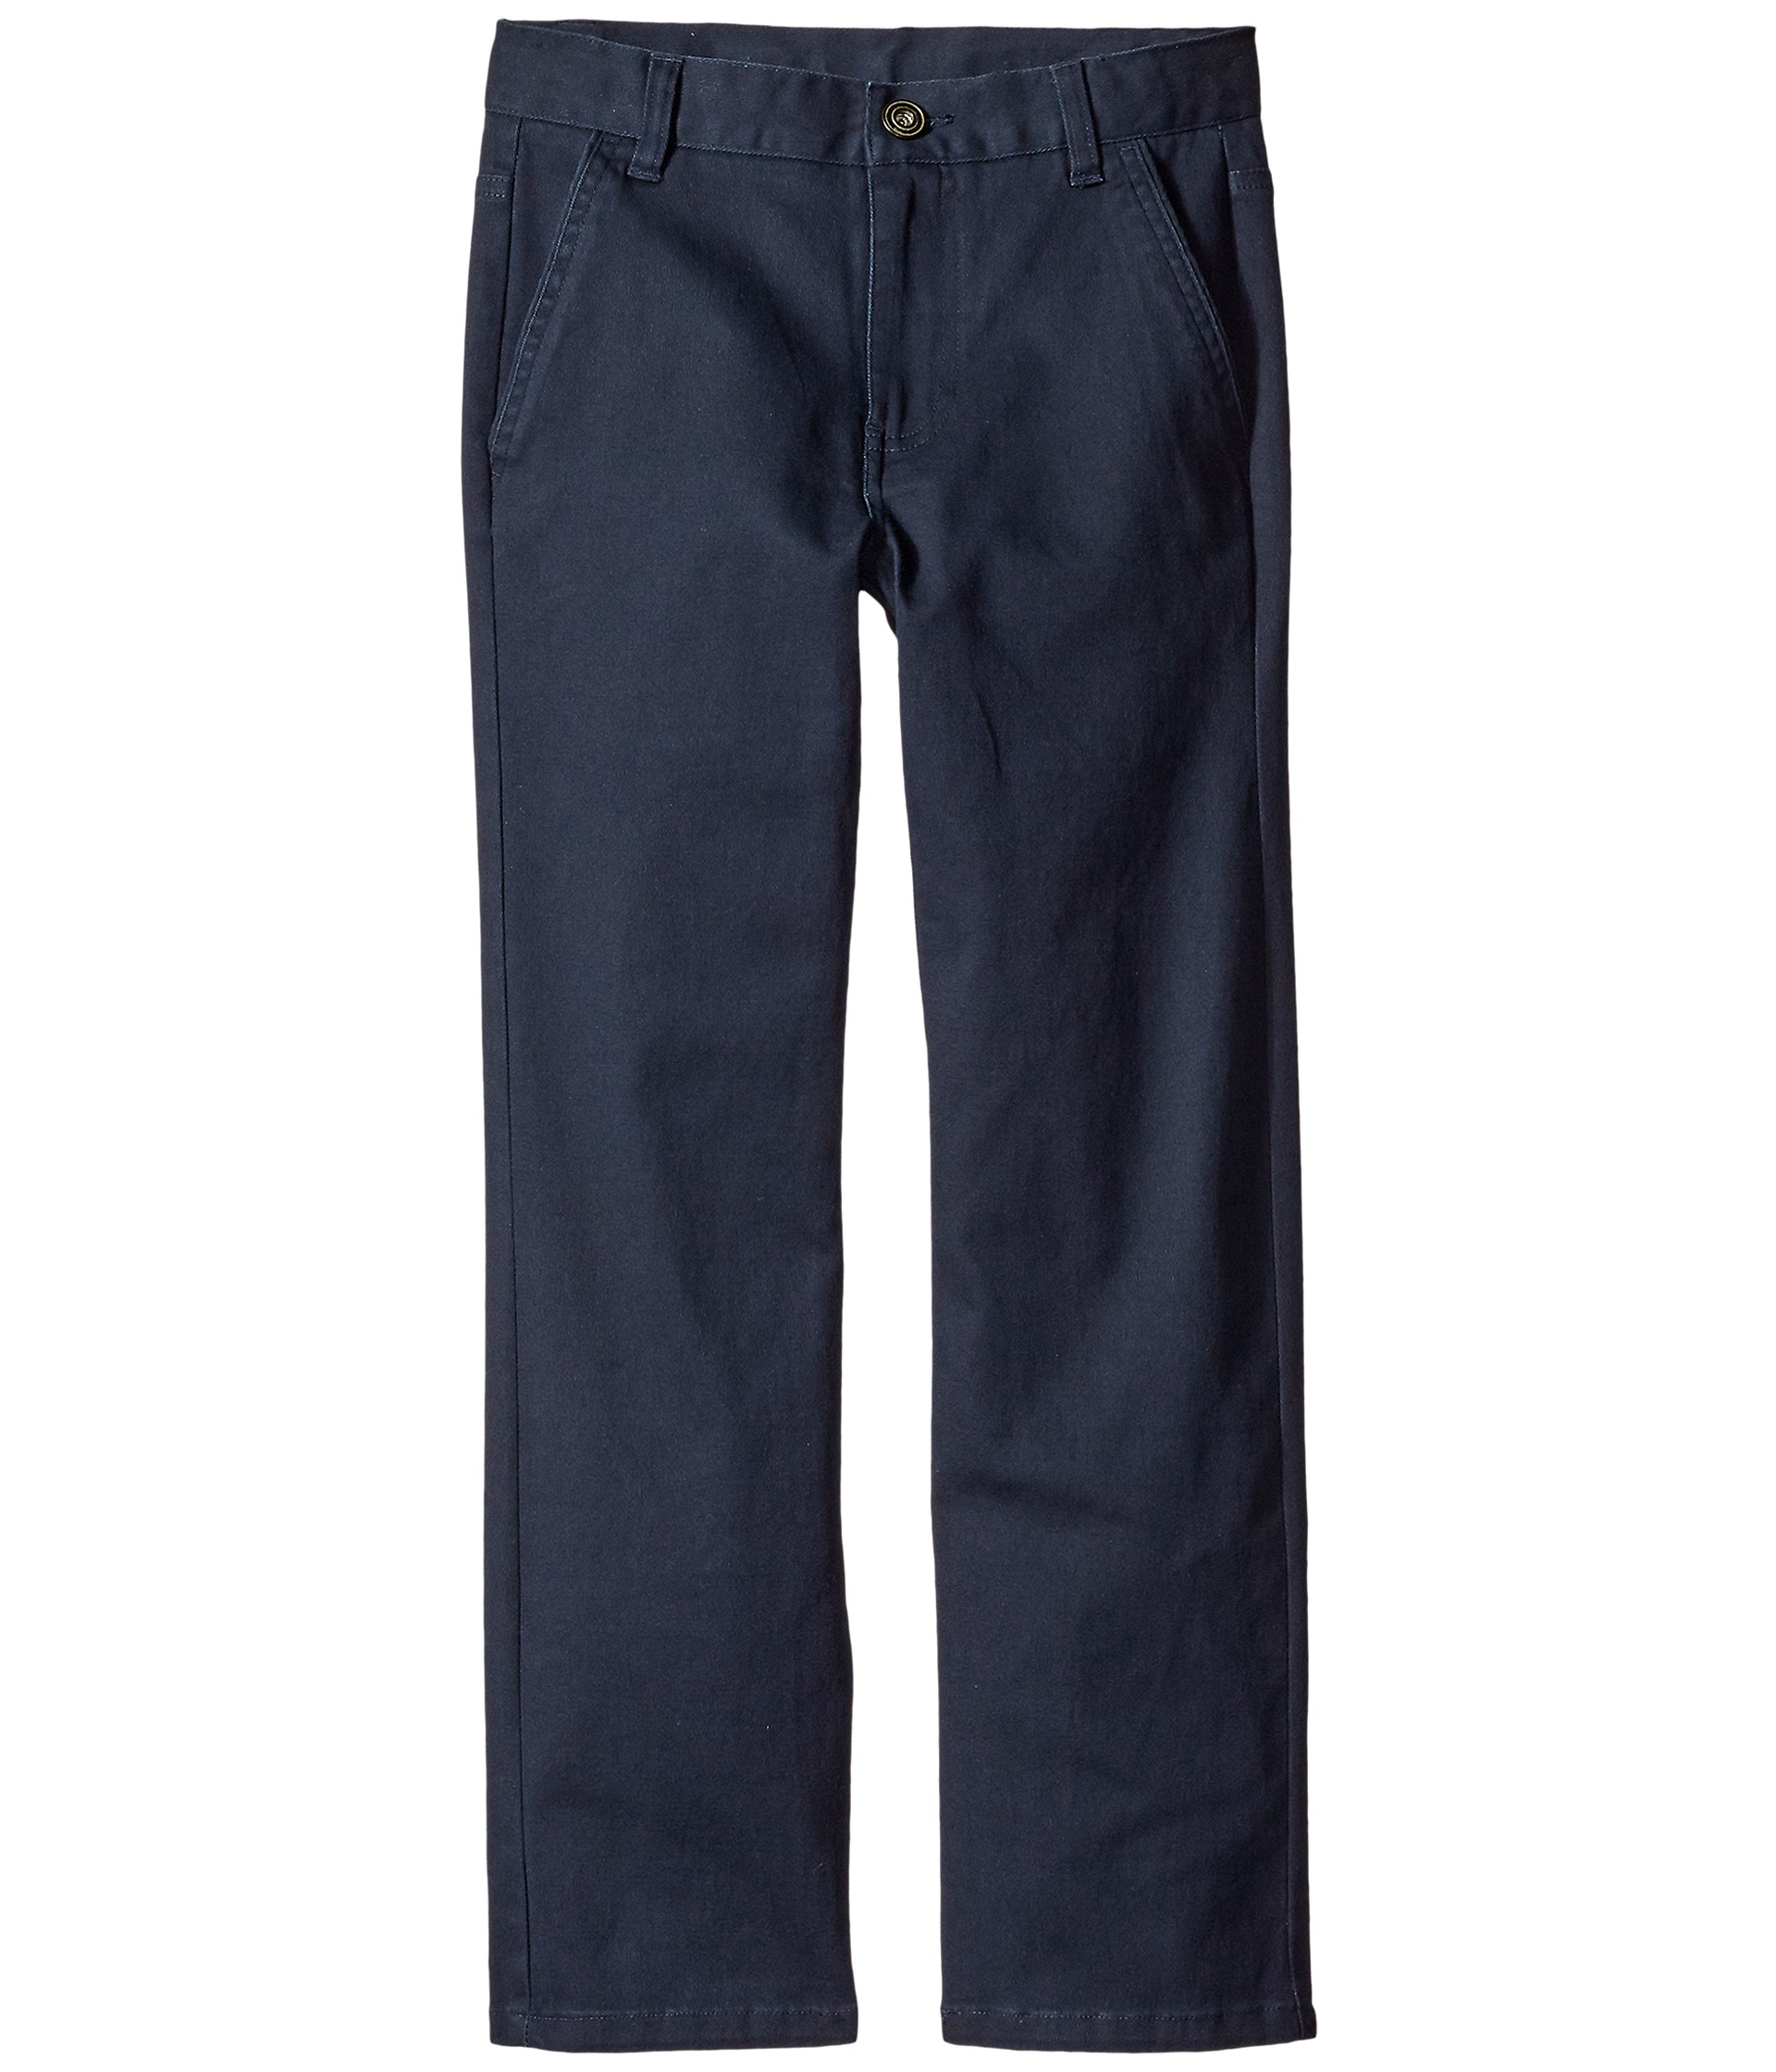 Husky Boys Pants Clothes at Macy's come in all styles. Shop for boys husky suits, jeans, pants & more at Macy's! Free shipping: Macy's Star Rewards Members!